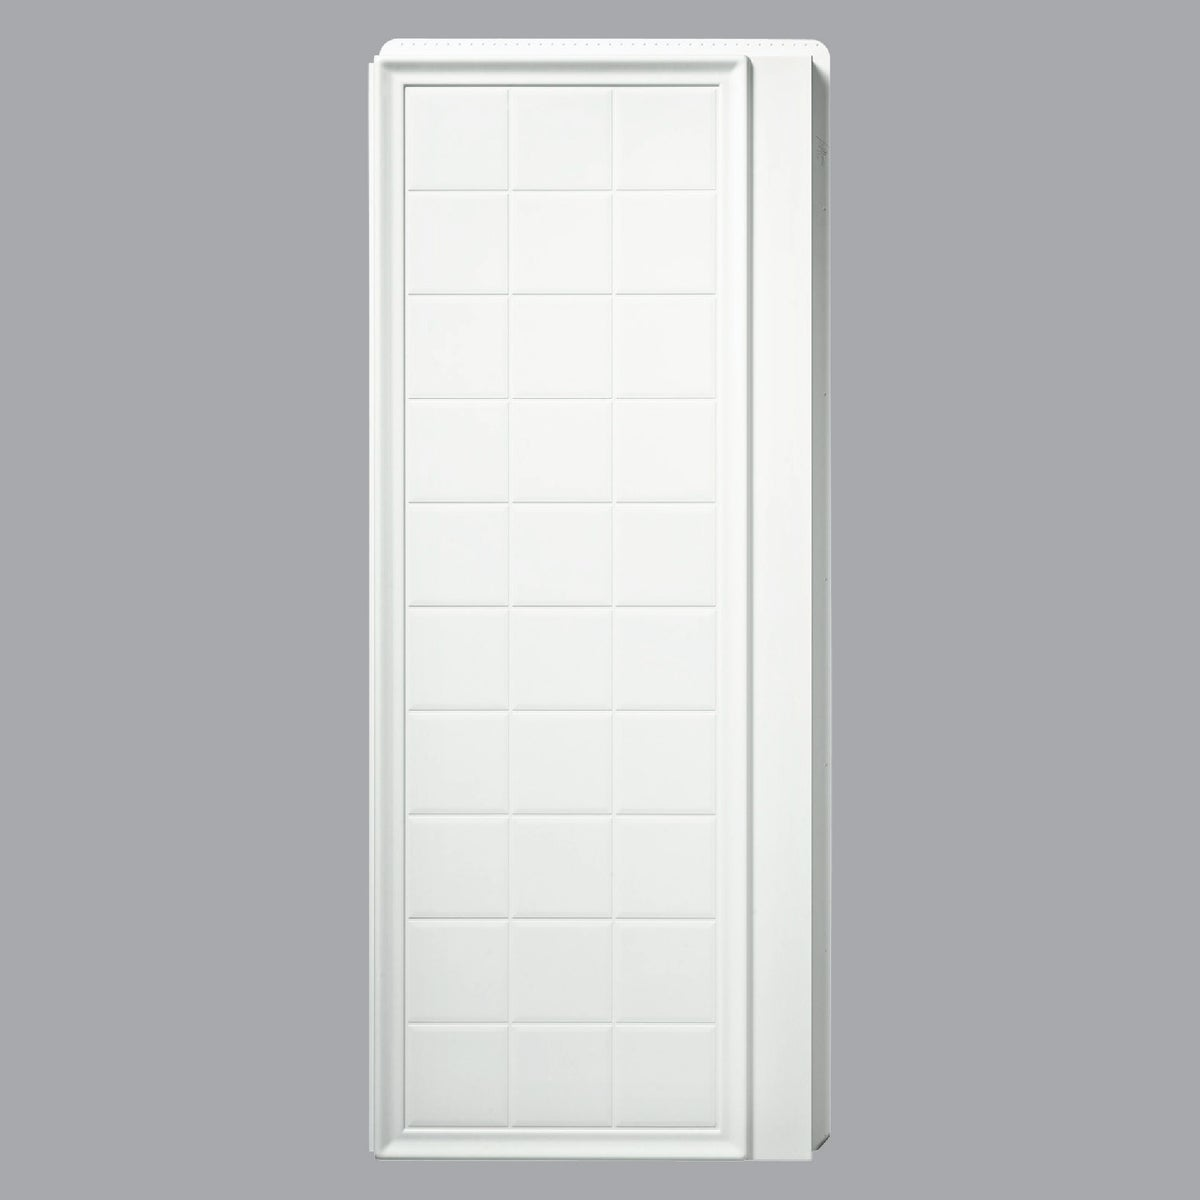 ENSEMBLE TILE ENDWALLS - 72105100-0 by Sterling Pbg/vikrell